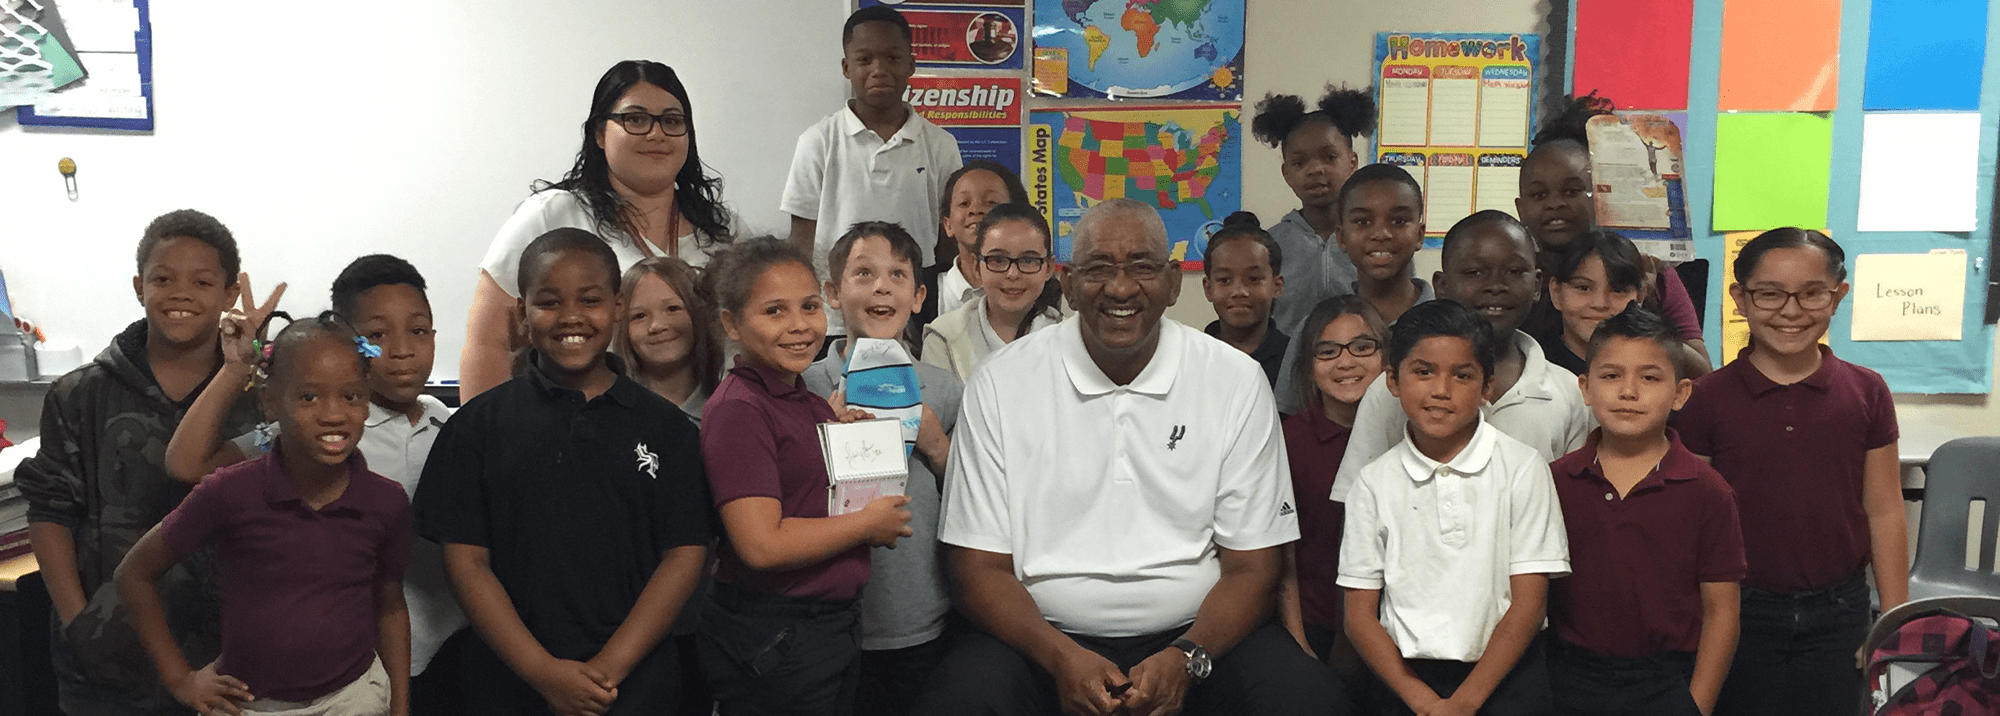 Group of students posing with George Gervin